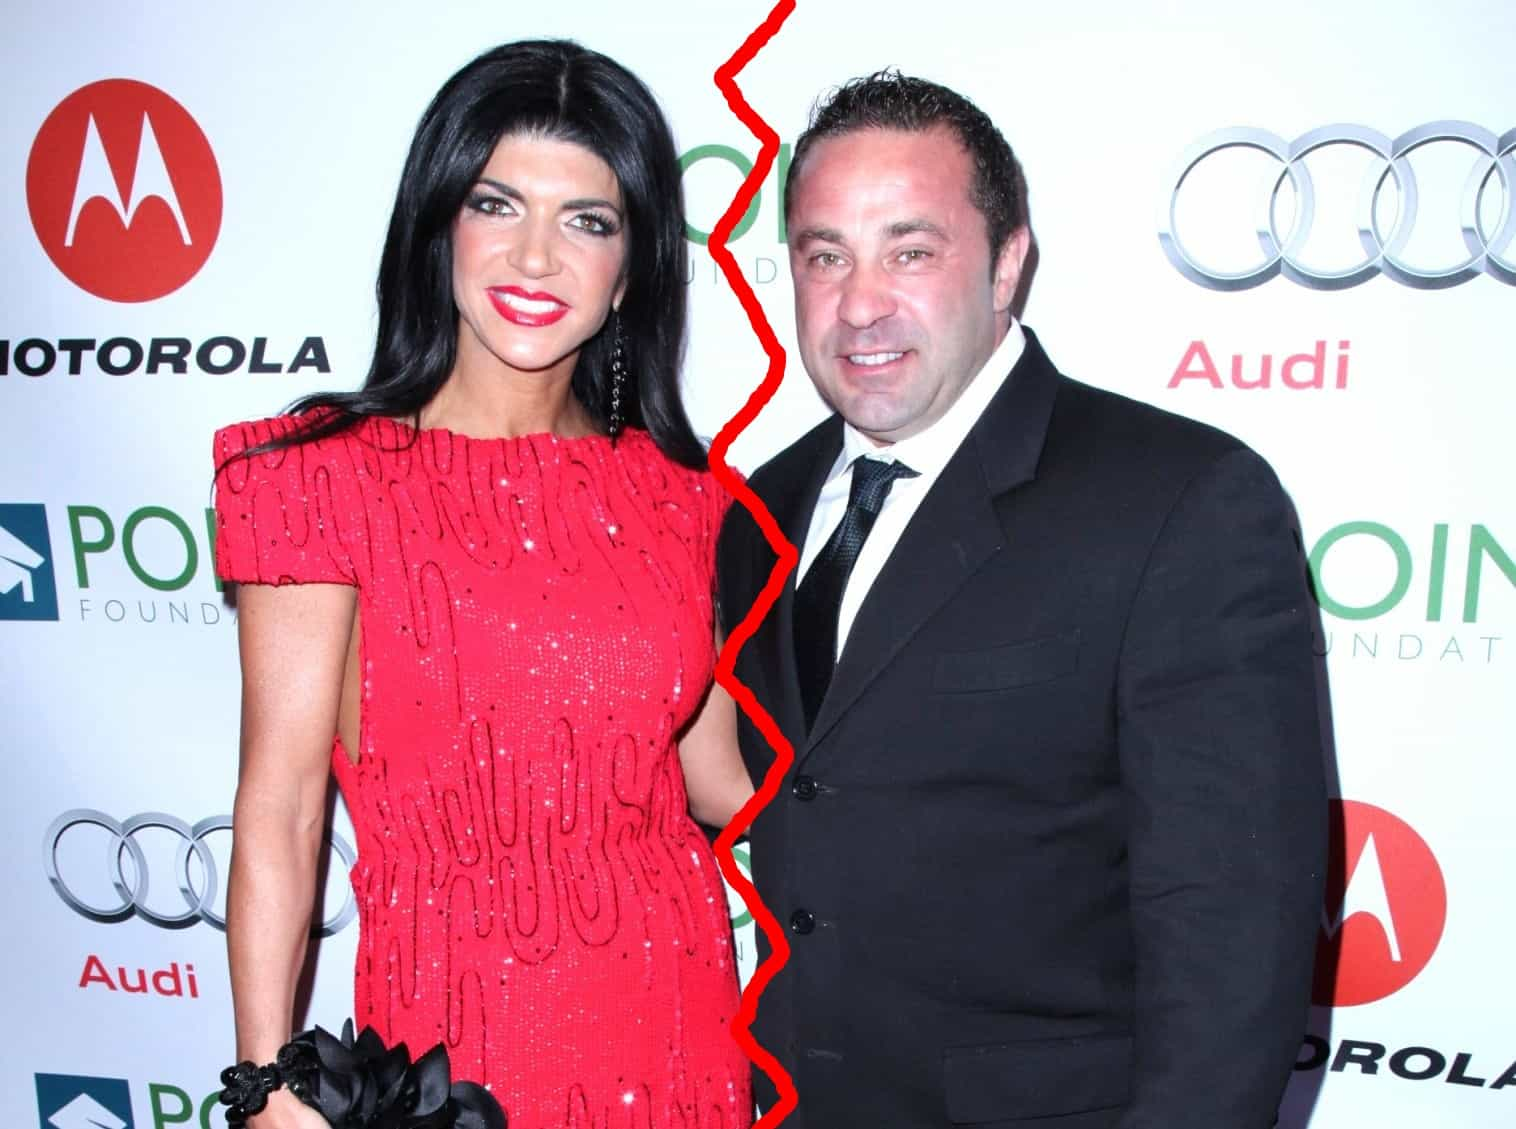 It's Official - RHONJ's Teresa and Joe Giudice Have Separated After 20 Years of Marriage, See Joe's Post Plus Has He Began Dating?